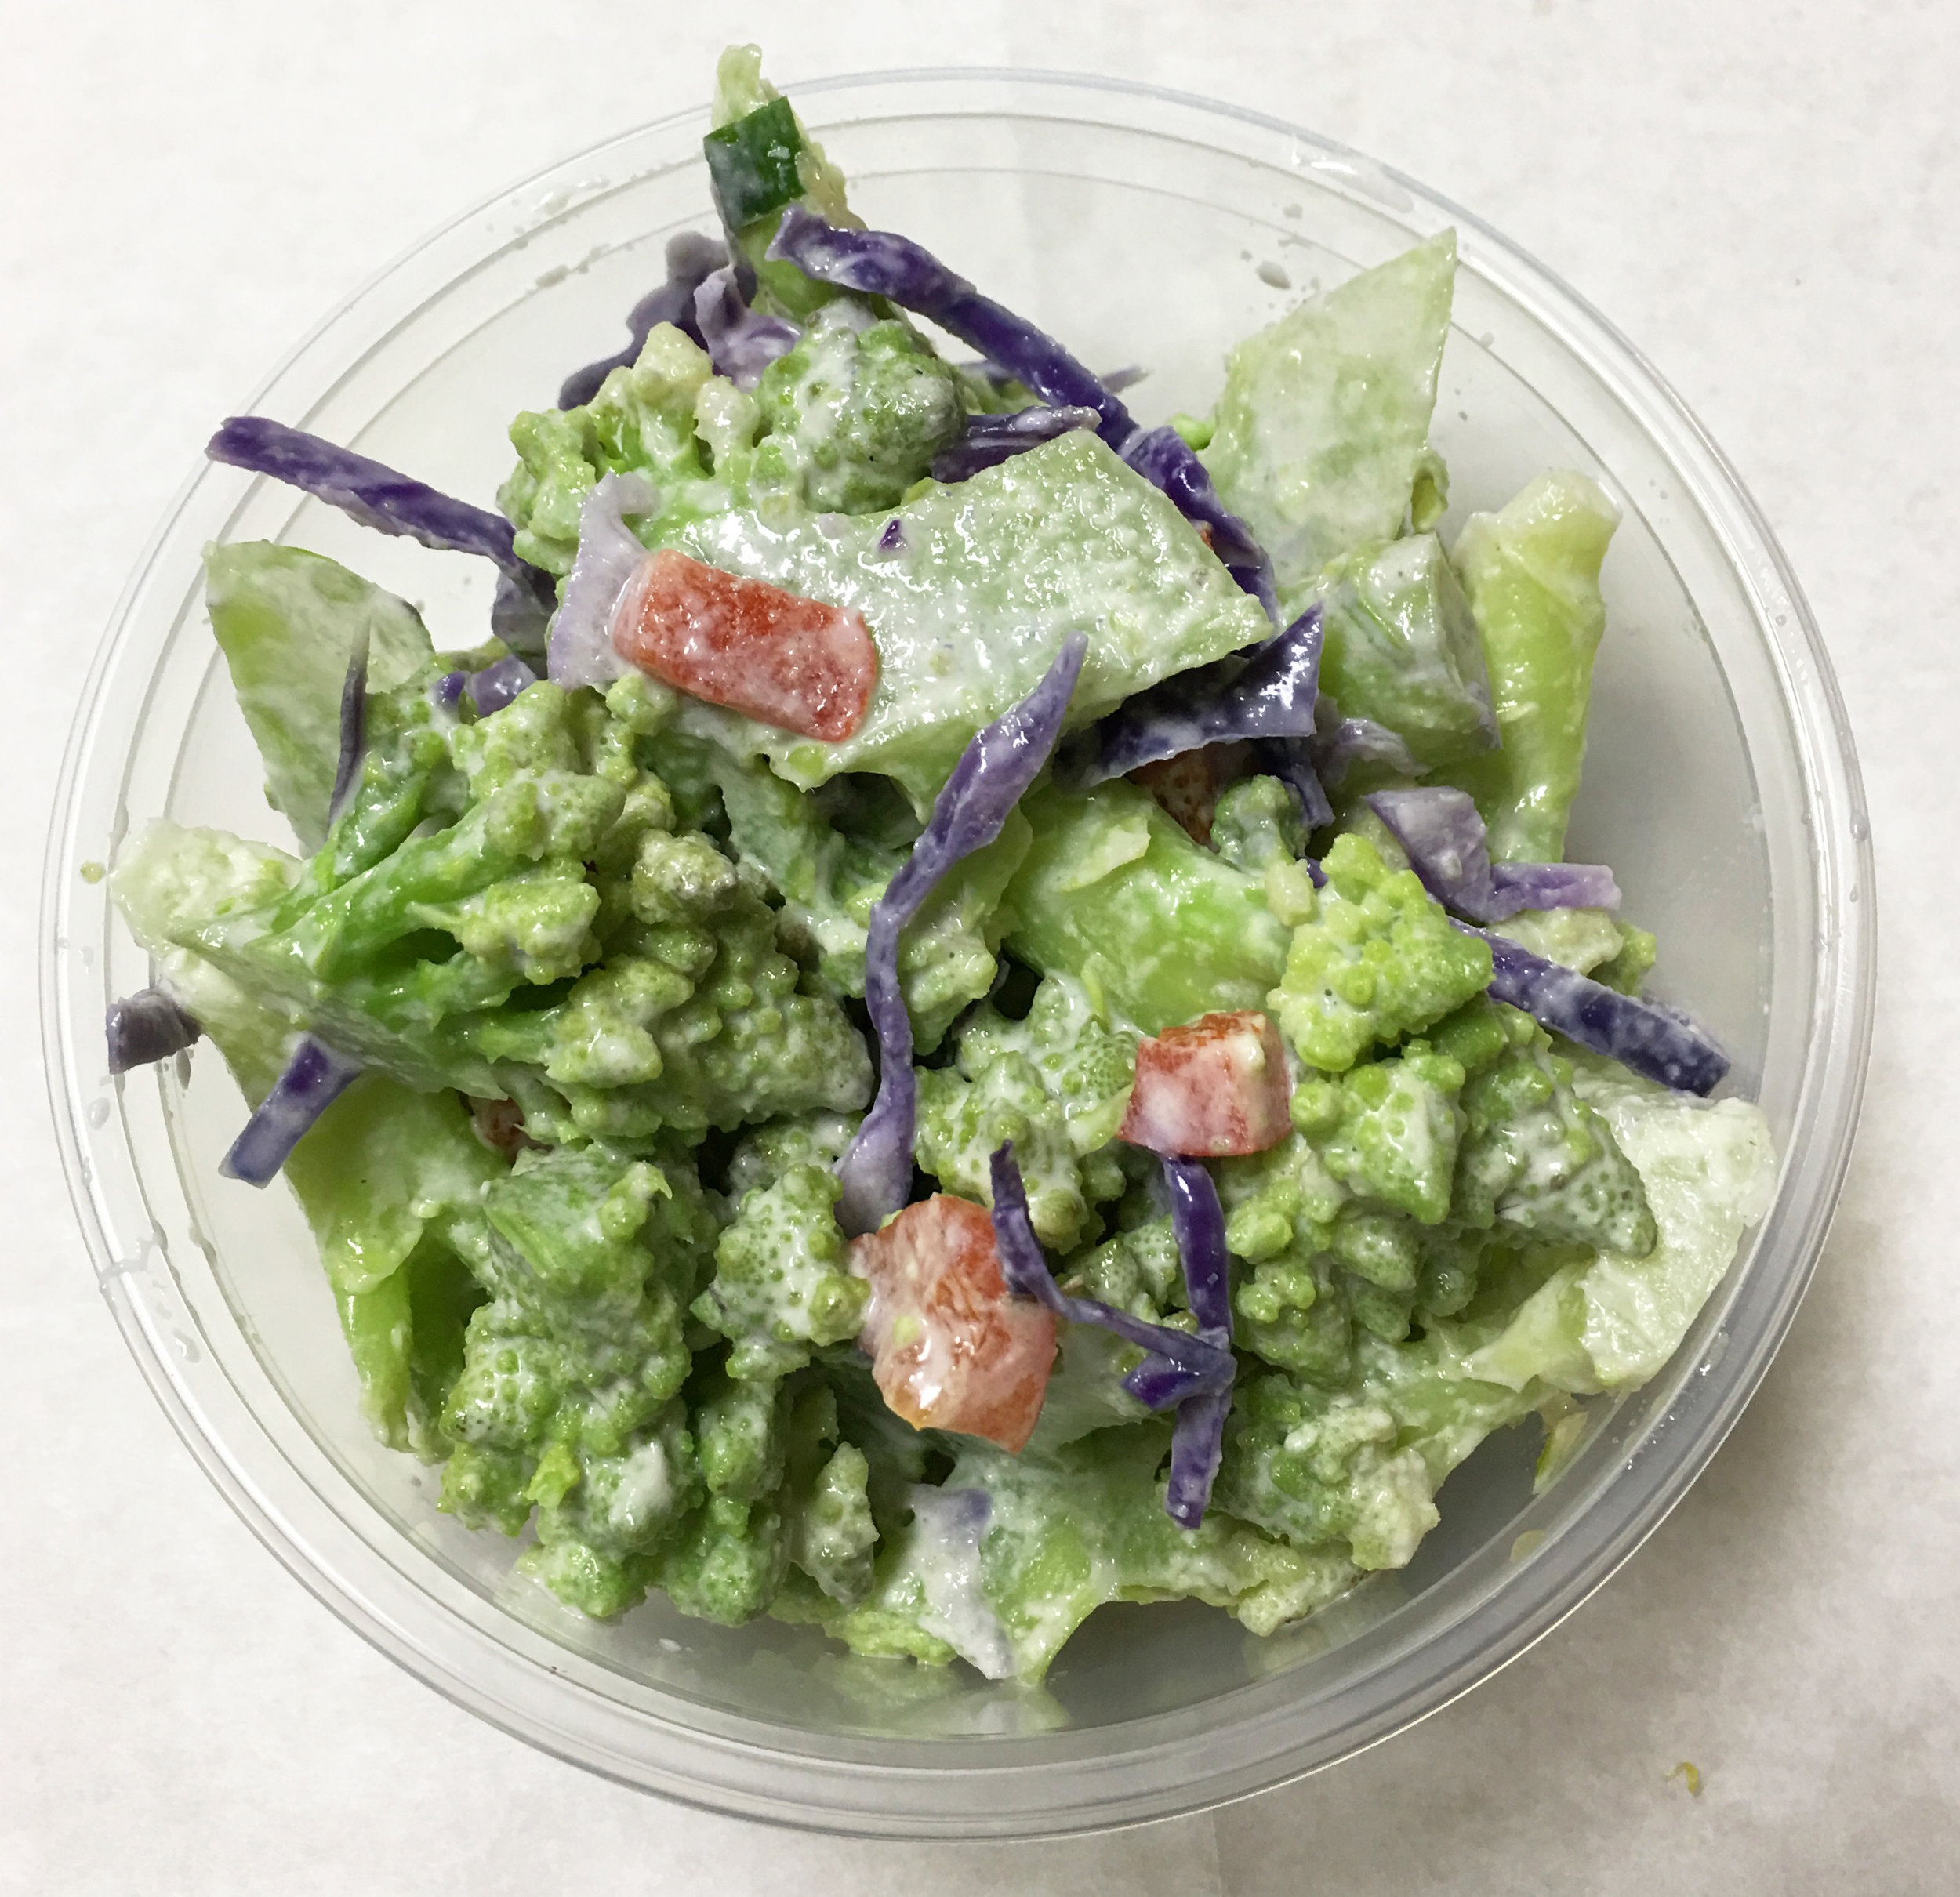 Boiled salad of Romanesco broccoli, red cabbage, and red bell peppers with a garlic tahini dressing.